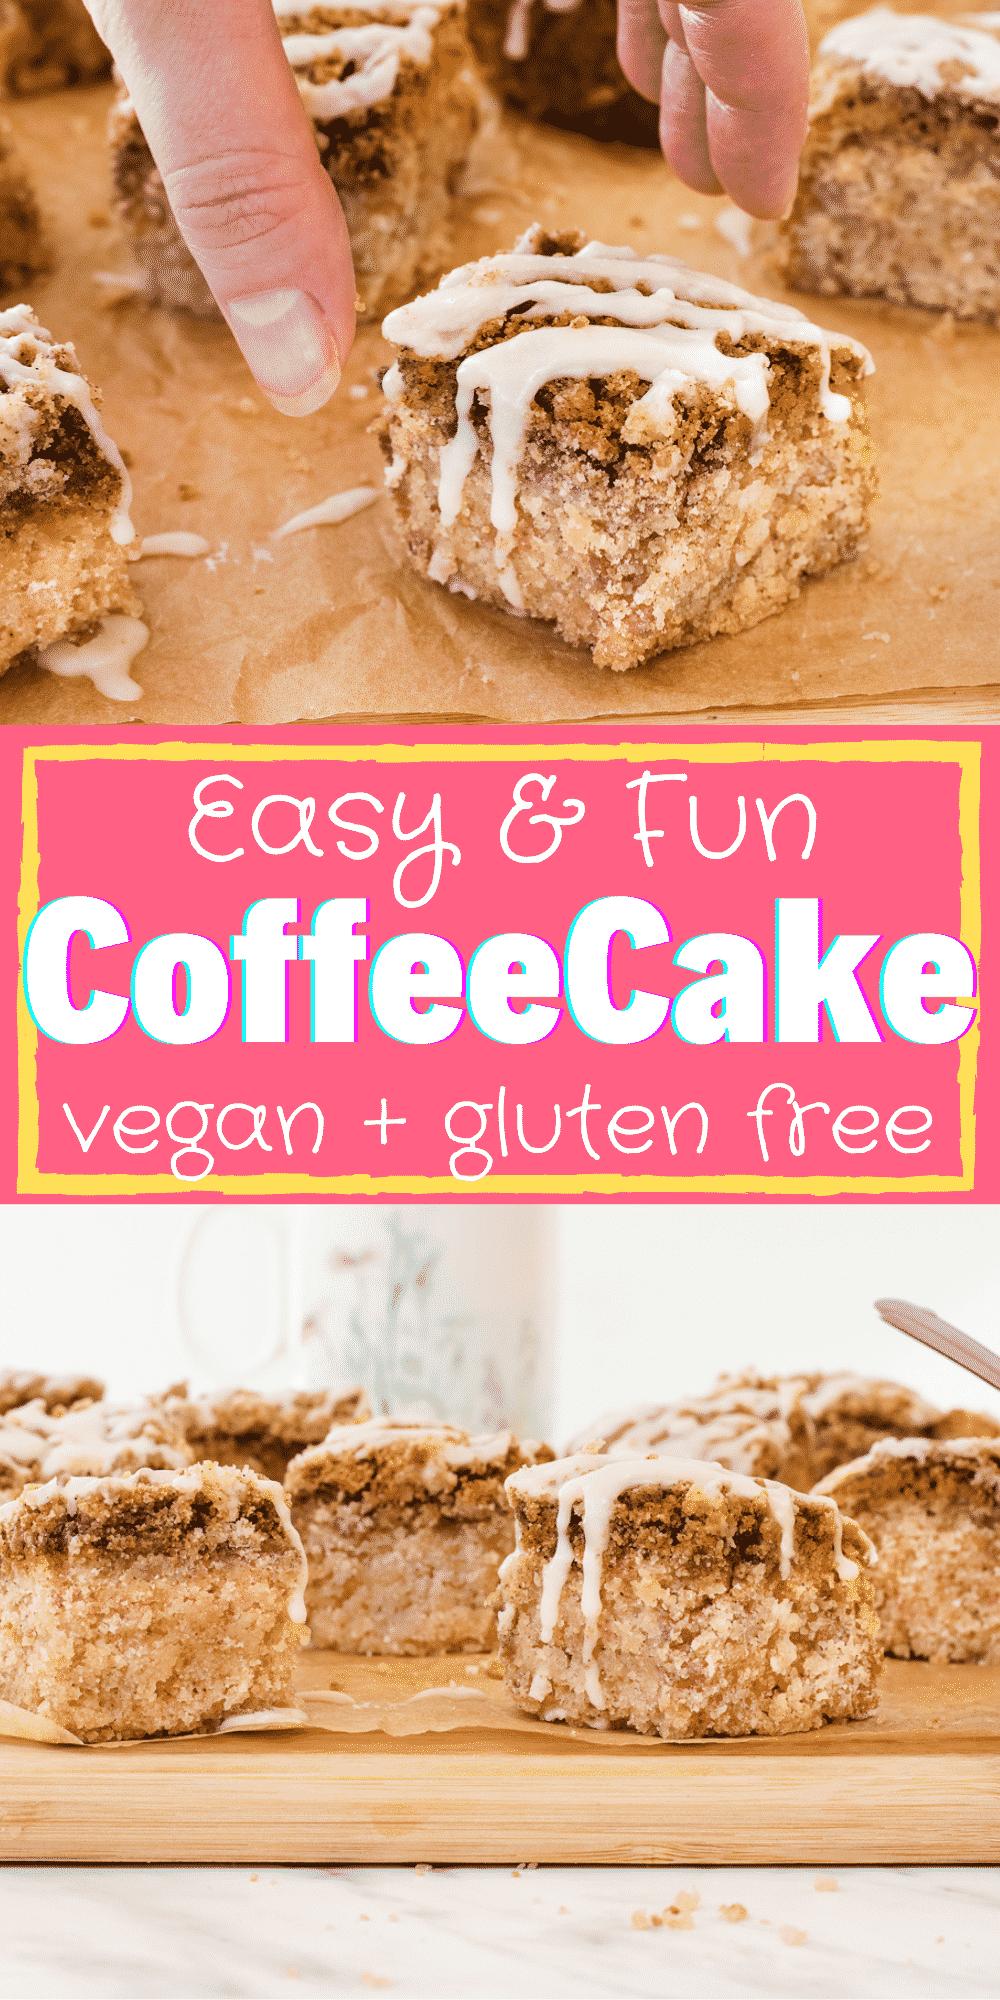 Vegan Coffee Cake is so easy to make! Add this simple icing drizzle over the cinnamon streusel topping for the best sweet breakfast treat that's perfect for holiday mornings.